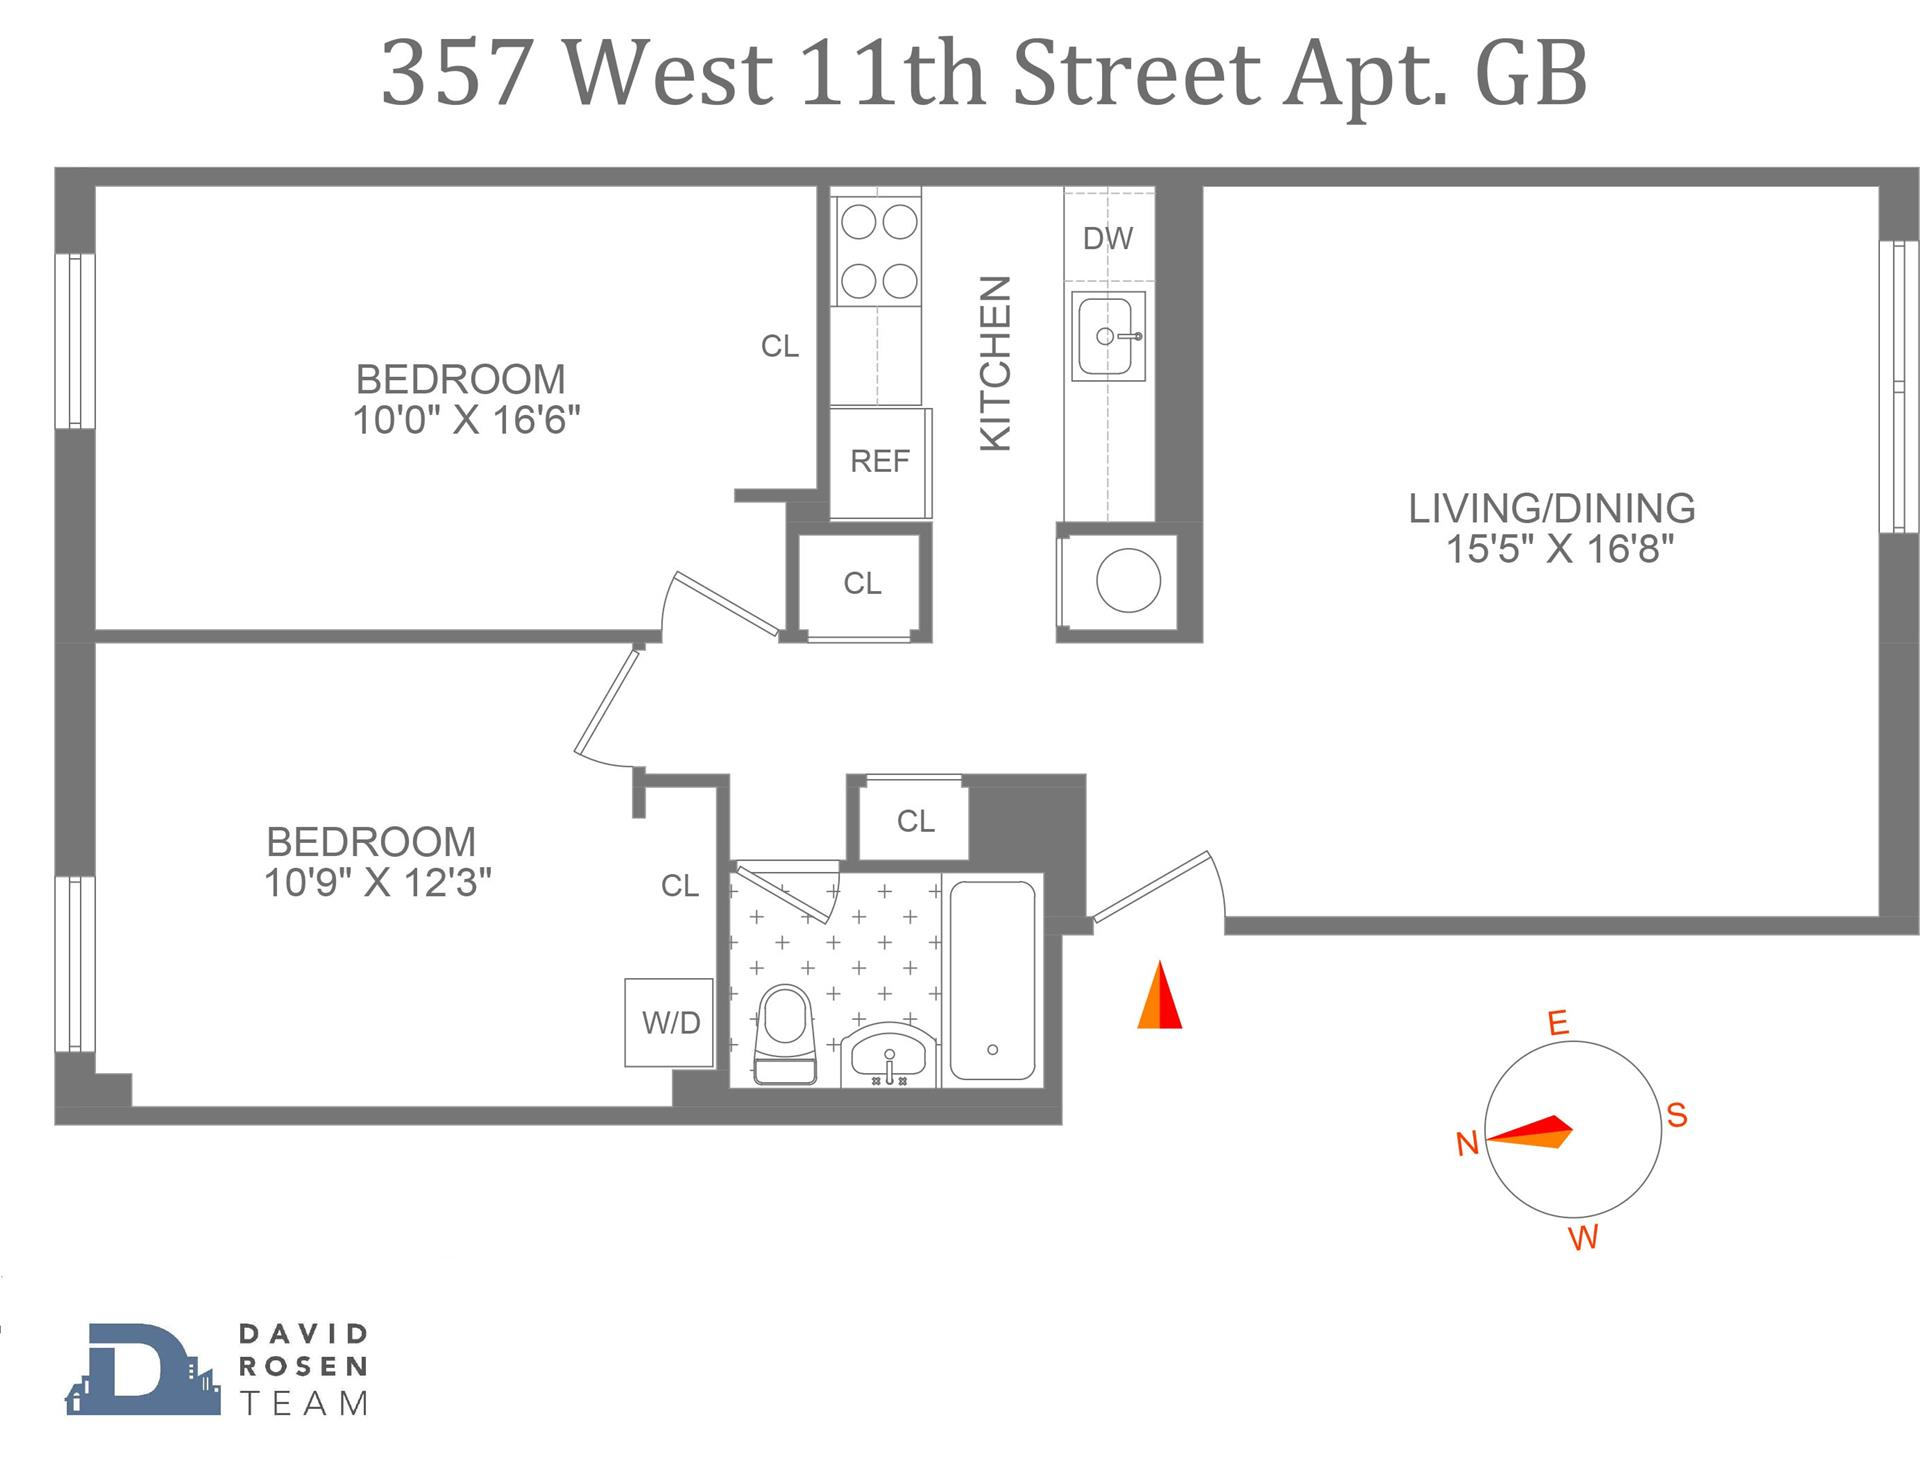 Floor plan of 357 West 11th St, GB - West Village - Meatpacking District, New York